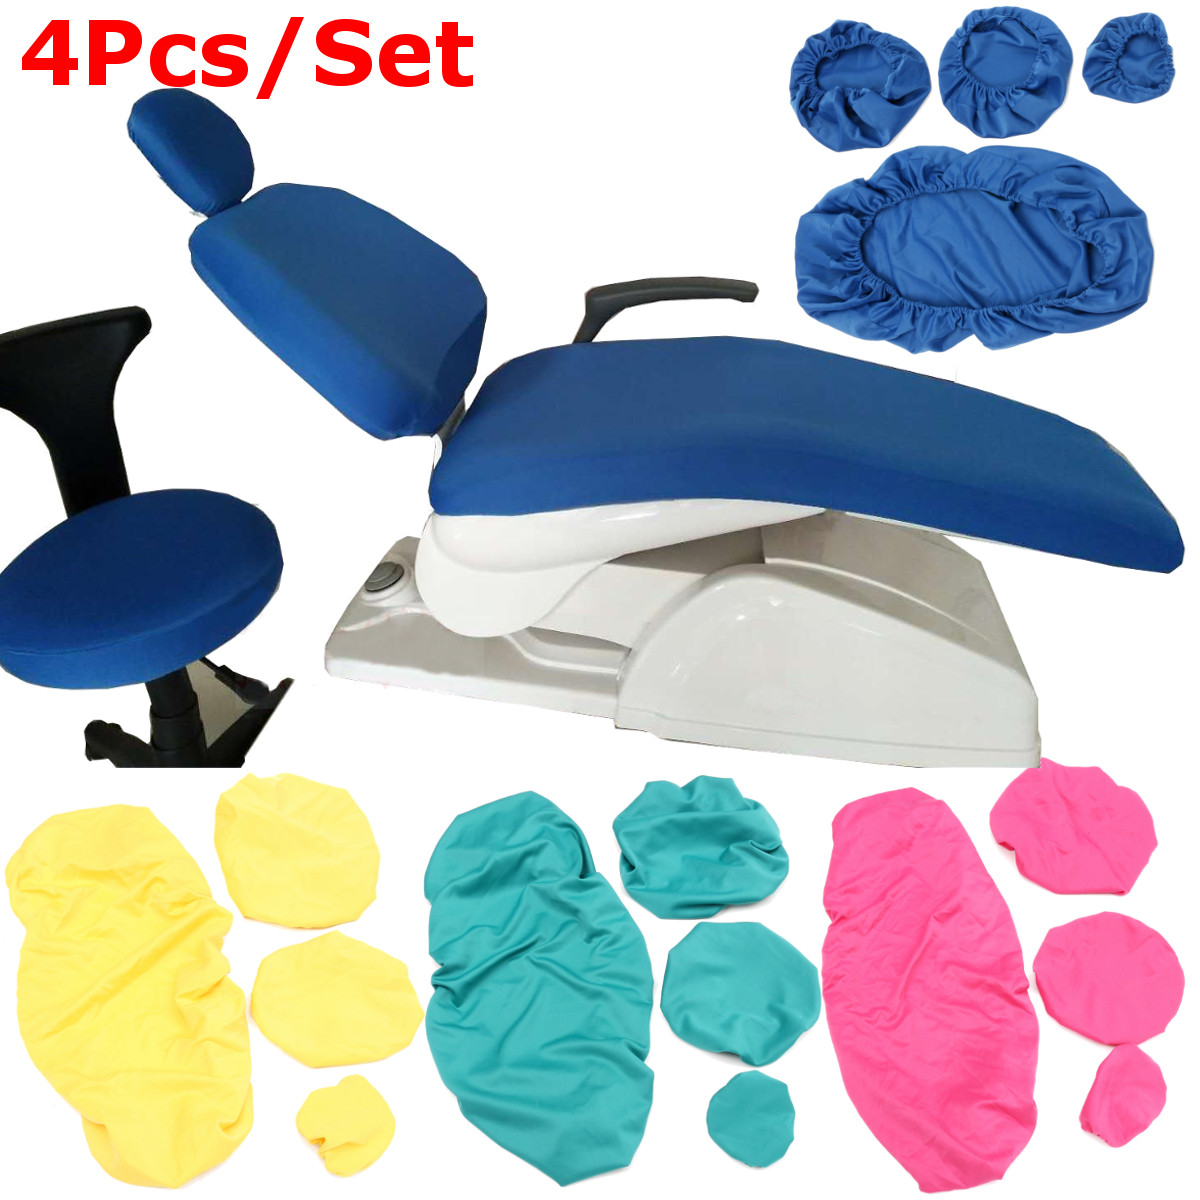 4Pcs/Set Protective Dental Unit Covers Sleeves Cushion Elastic Case Cloth Seat Headrest Protector Kit Dentist Stool Accessories4Pcs/Set Protective Dental Unit Covers Sleeves Cushion Elastic Case Cloth Seat Headrest Protector Kit Dentist Stool Accessories